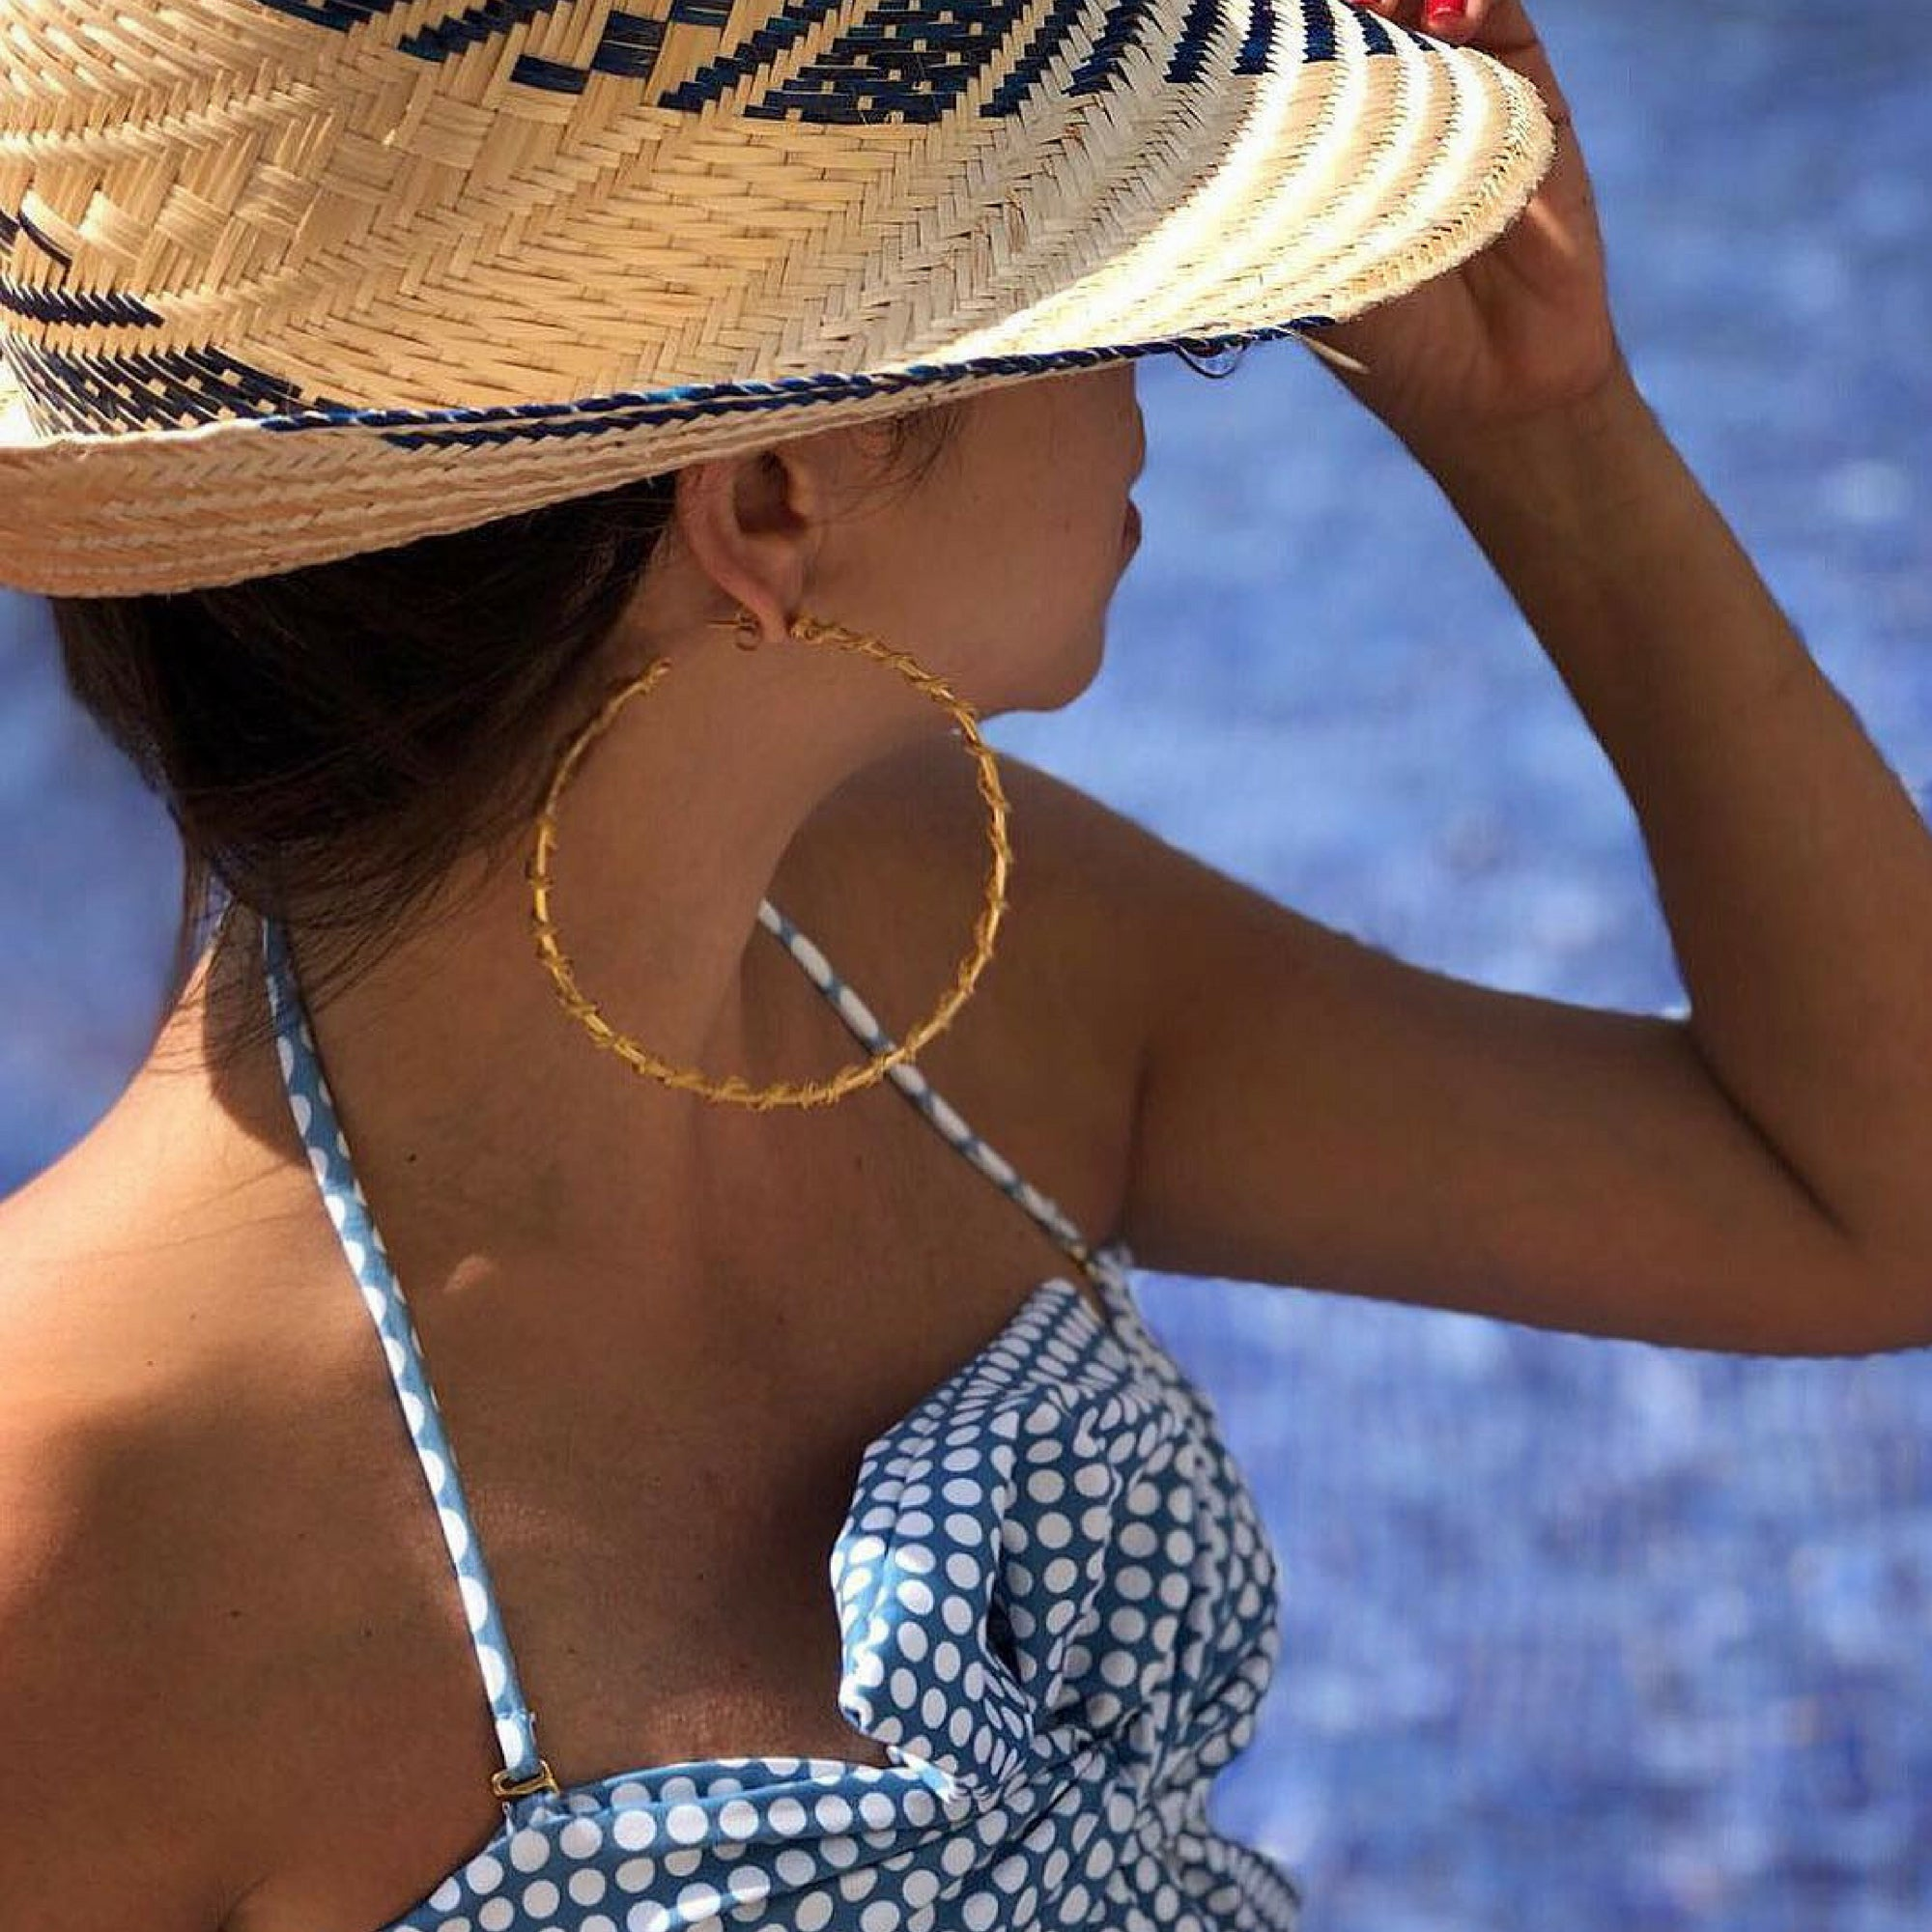 Liza Echeverry Jewelry Colombia Giant Gitana Hoops Gold